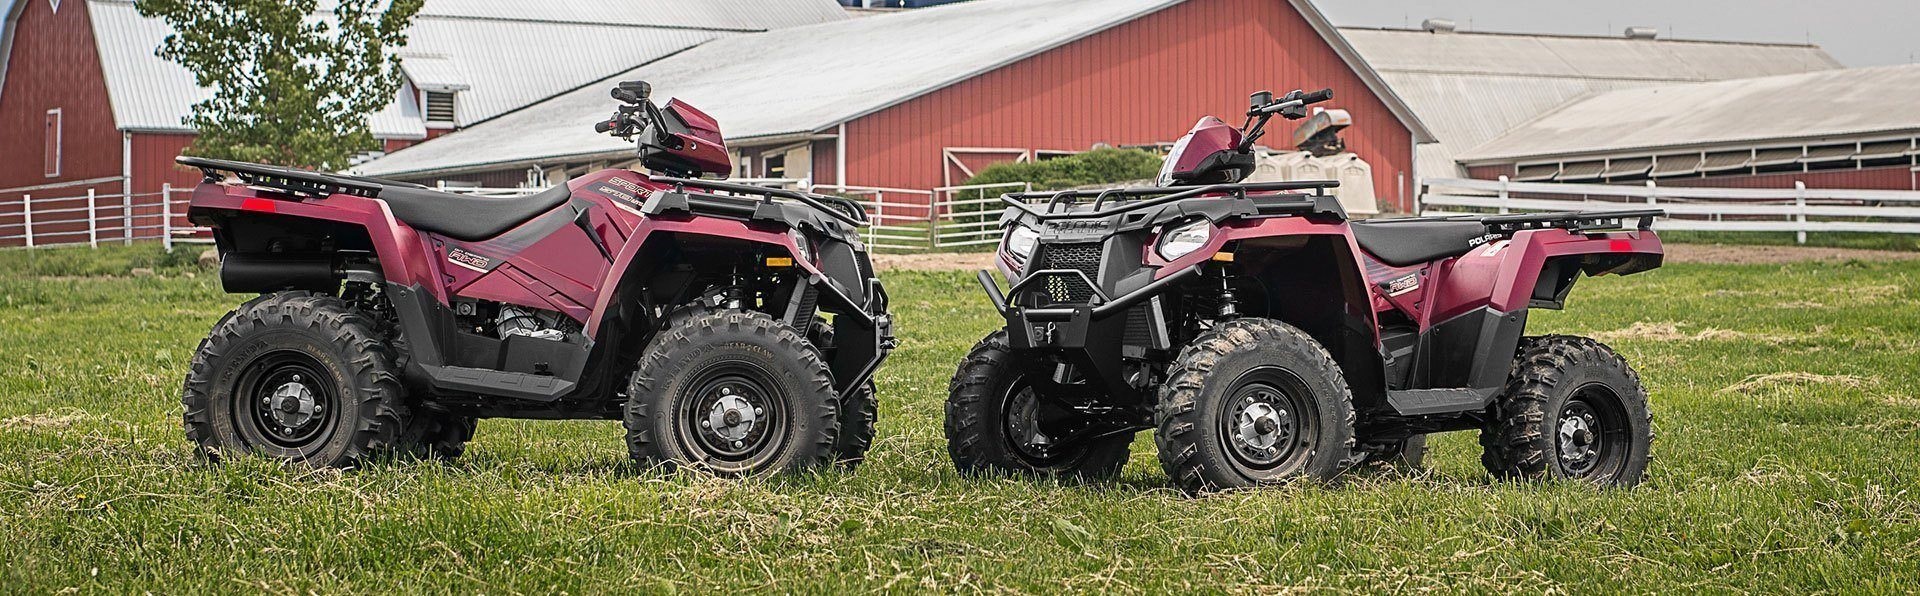 2017-Polaris-Sportsman-850-EPS